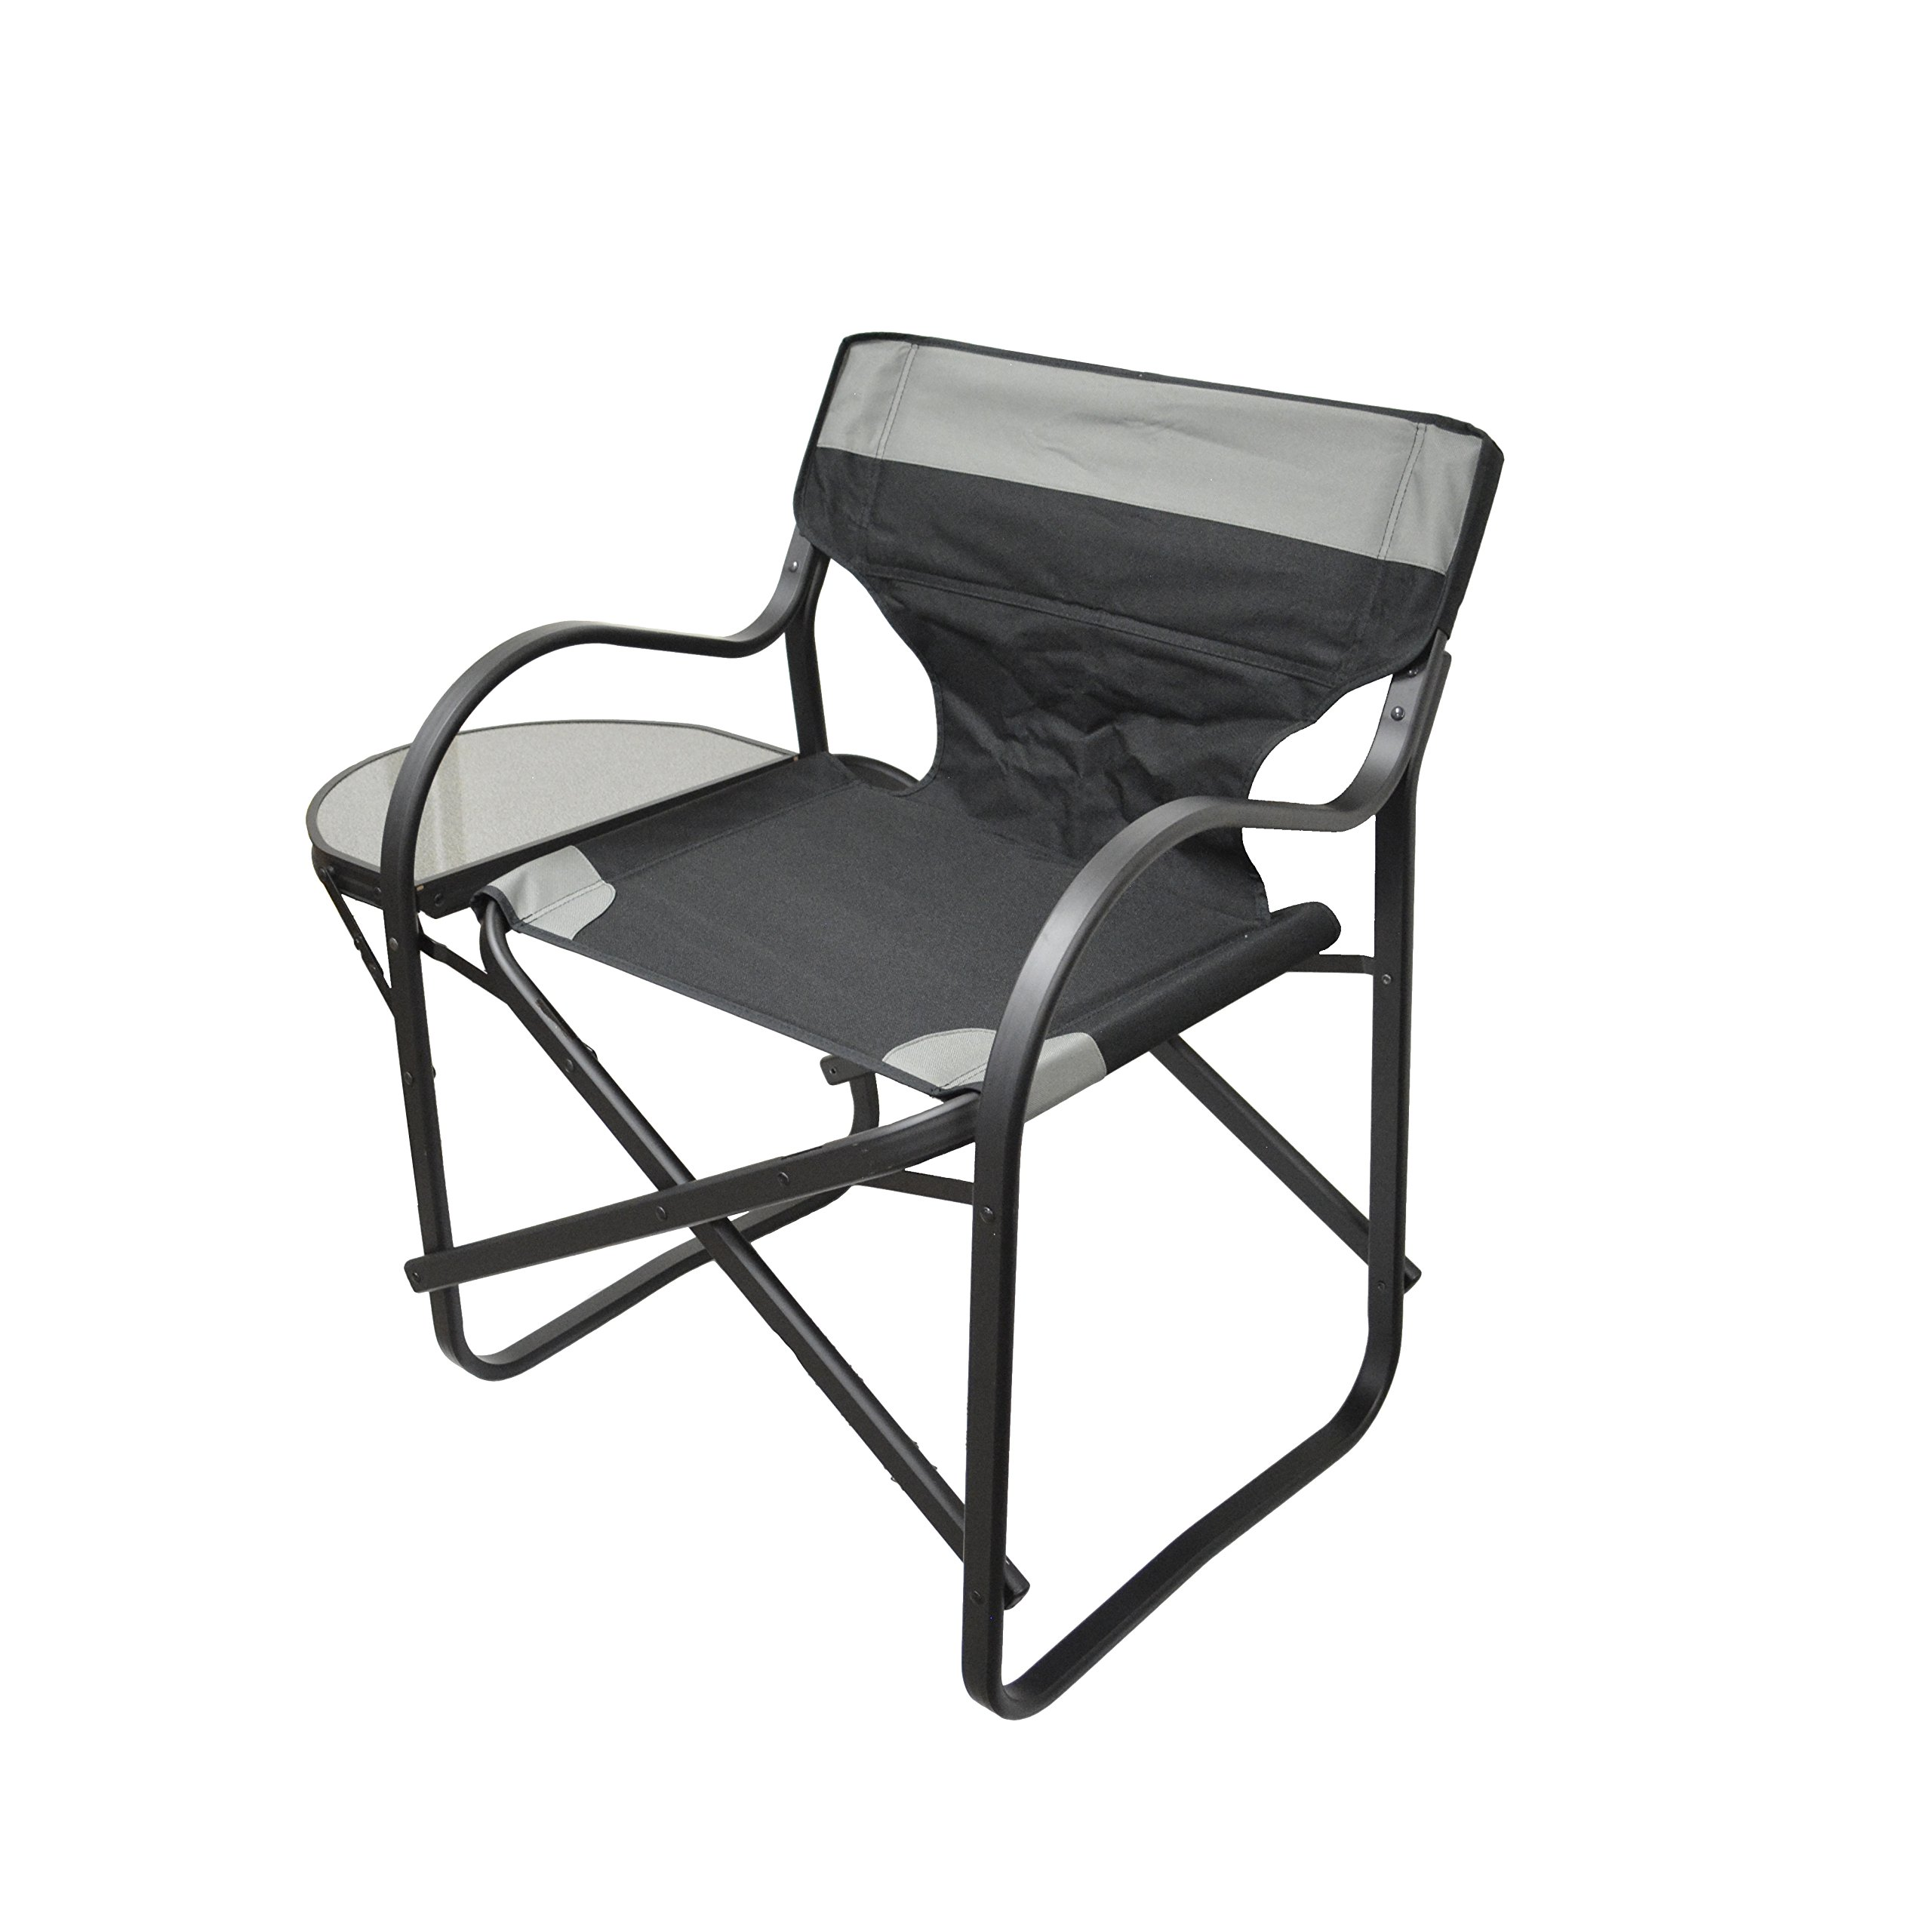 Folding Directors Chair with Side Table (Extra Wide Design)